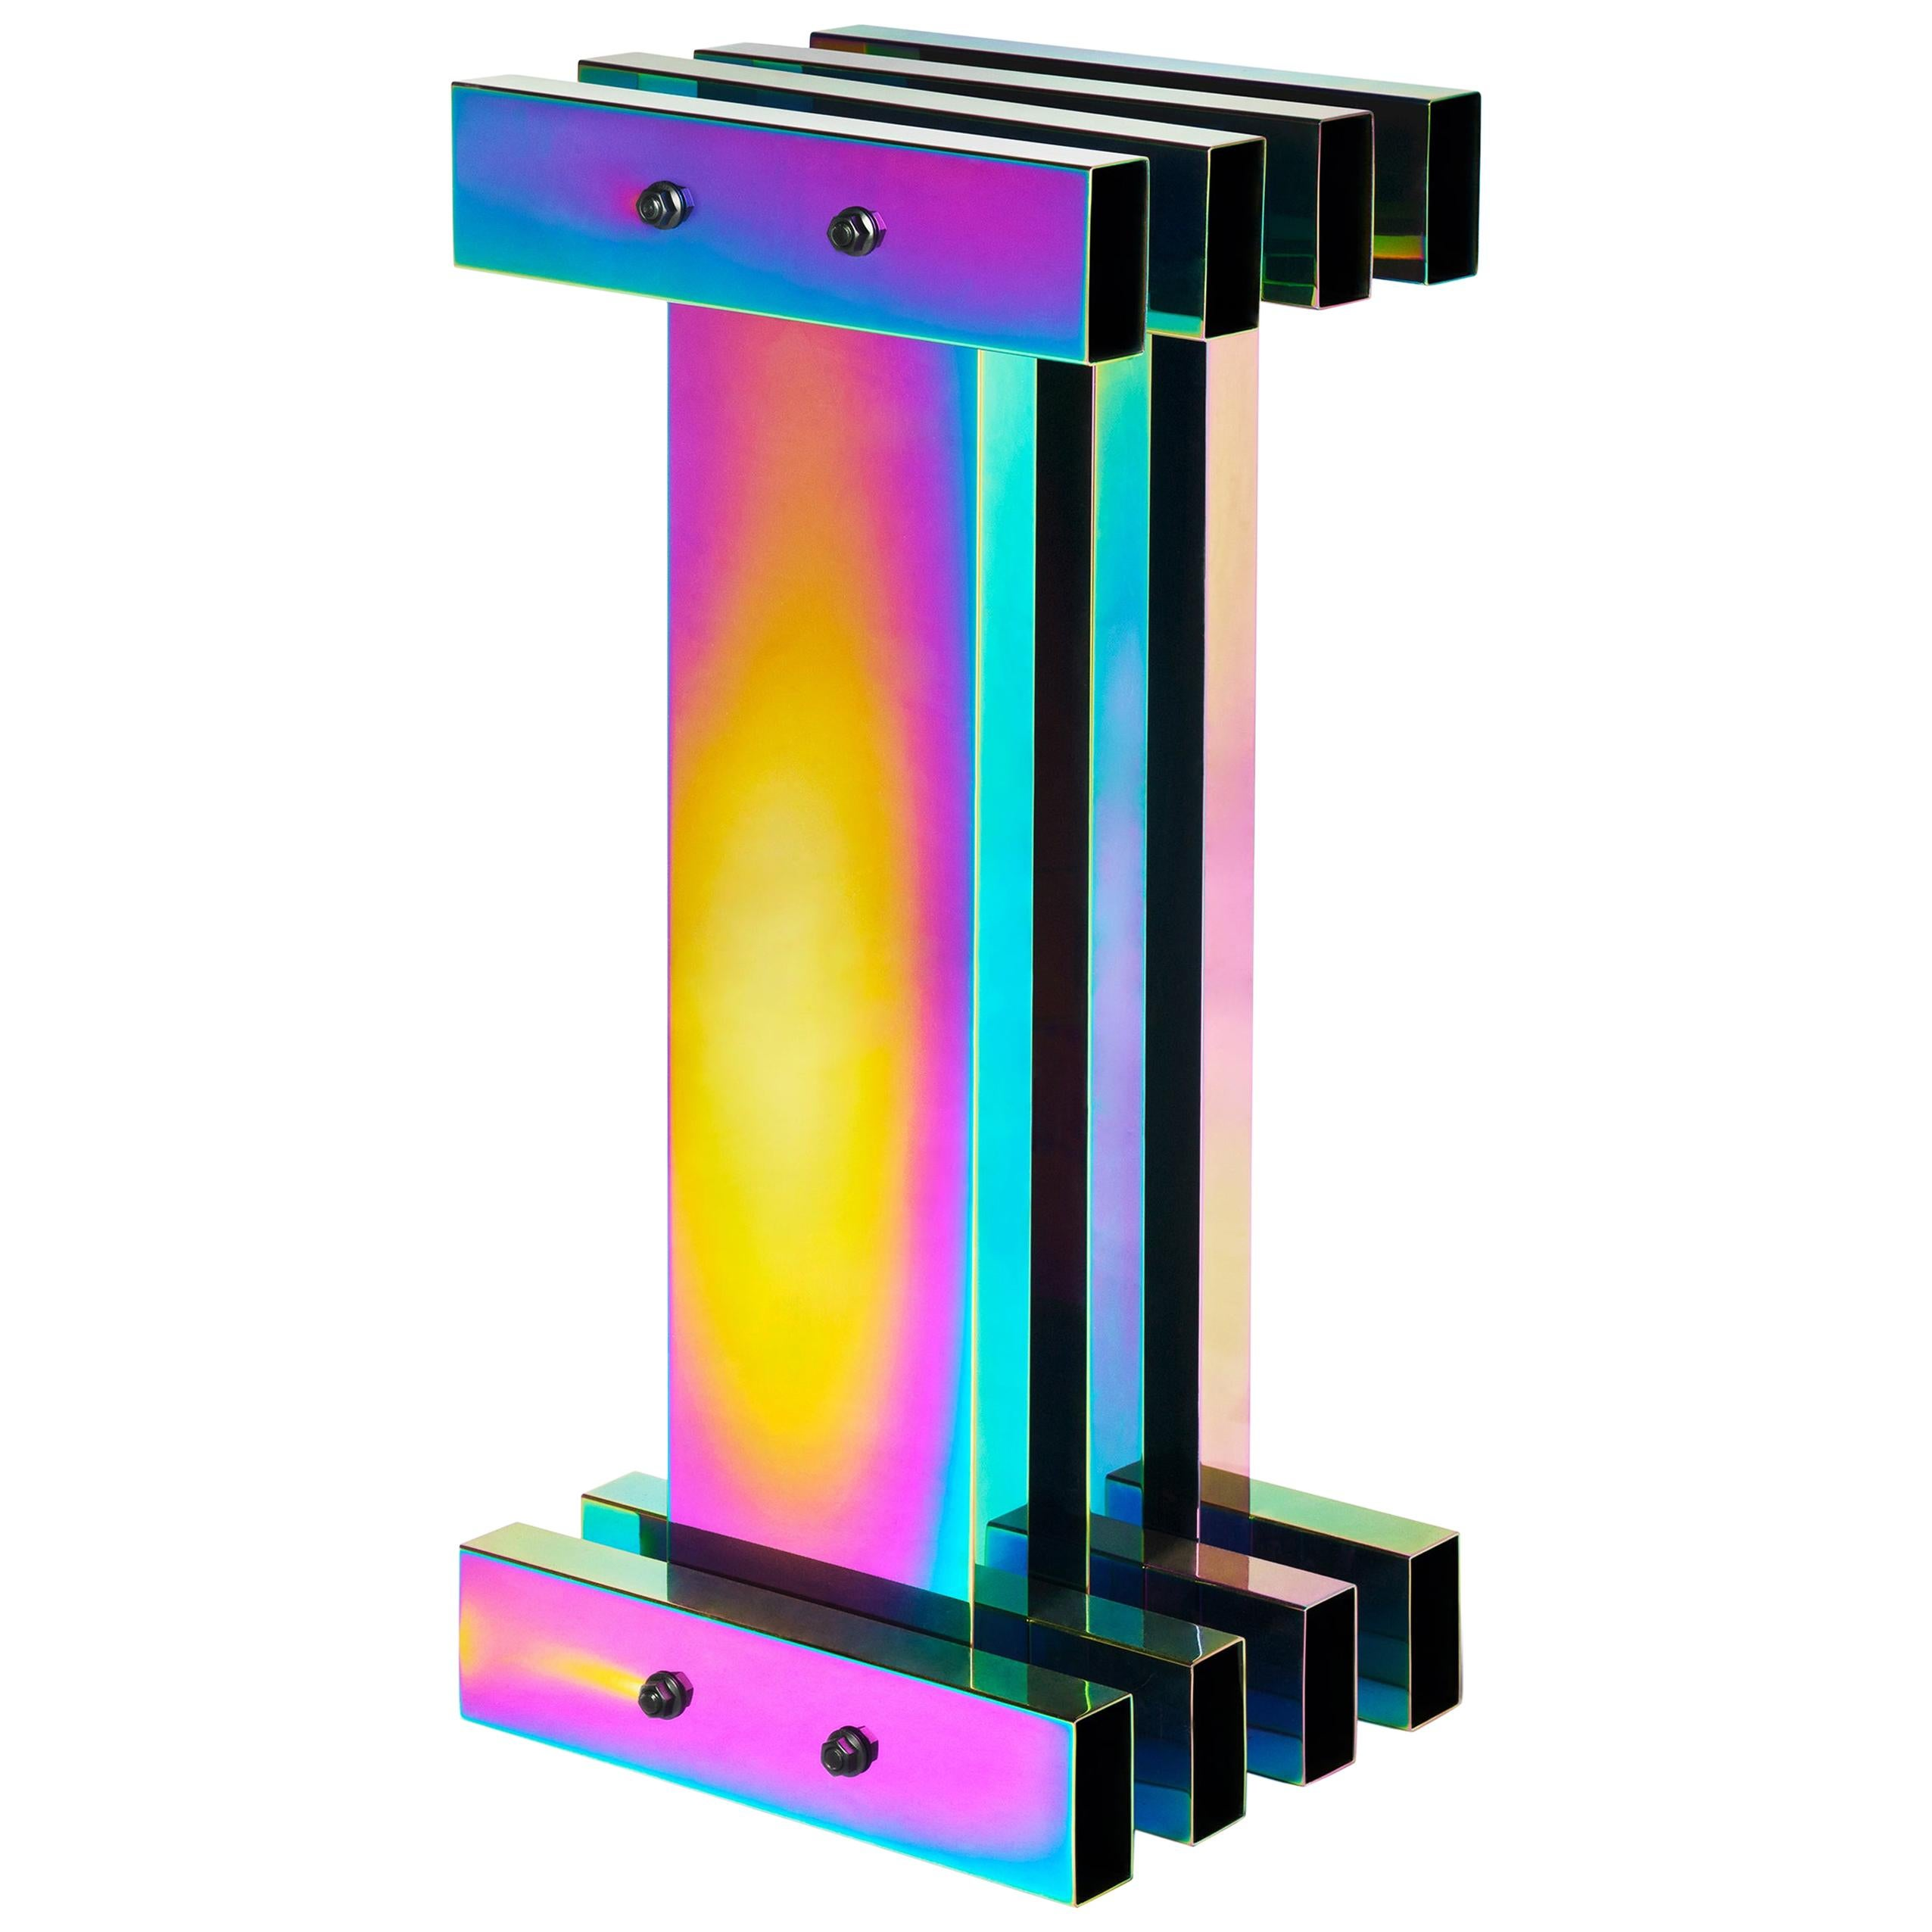 Rainbow Color Stainless Steel Hot Pedestal by Studio Buzao